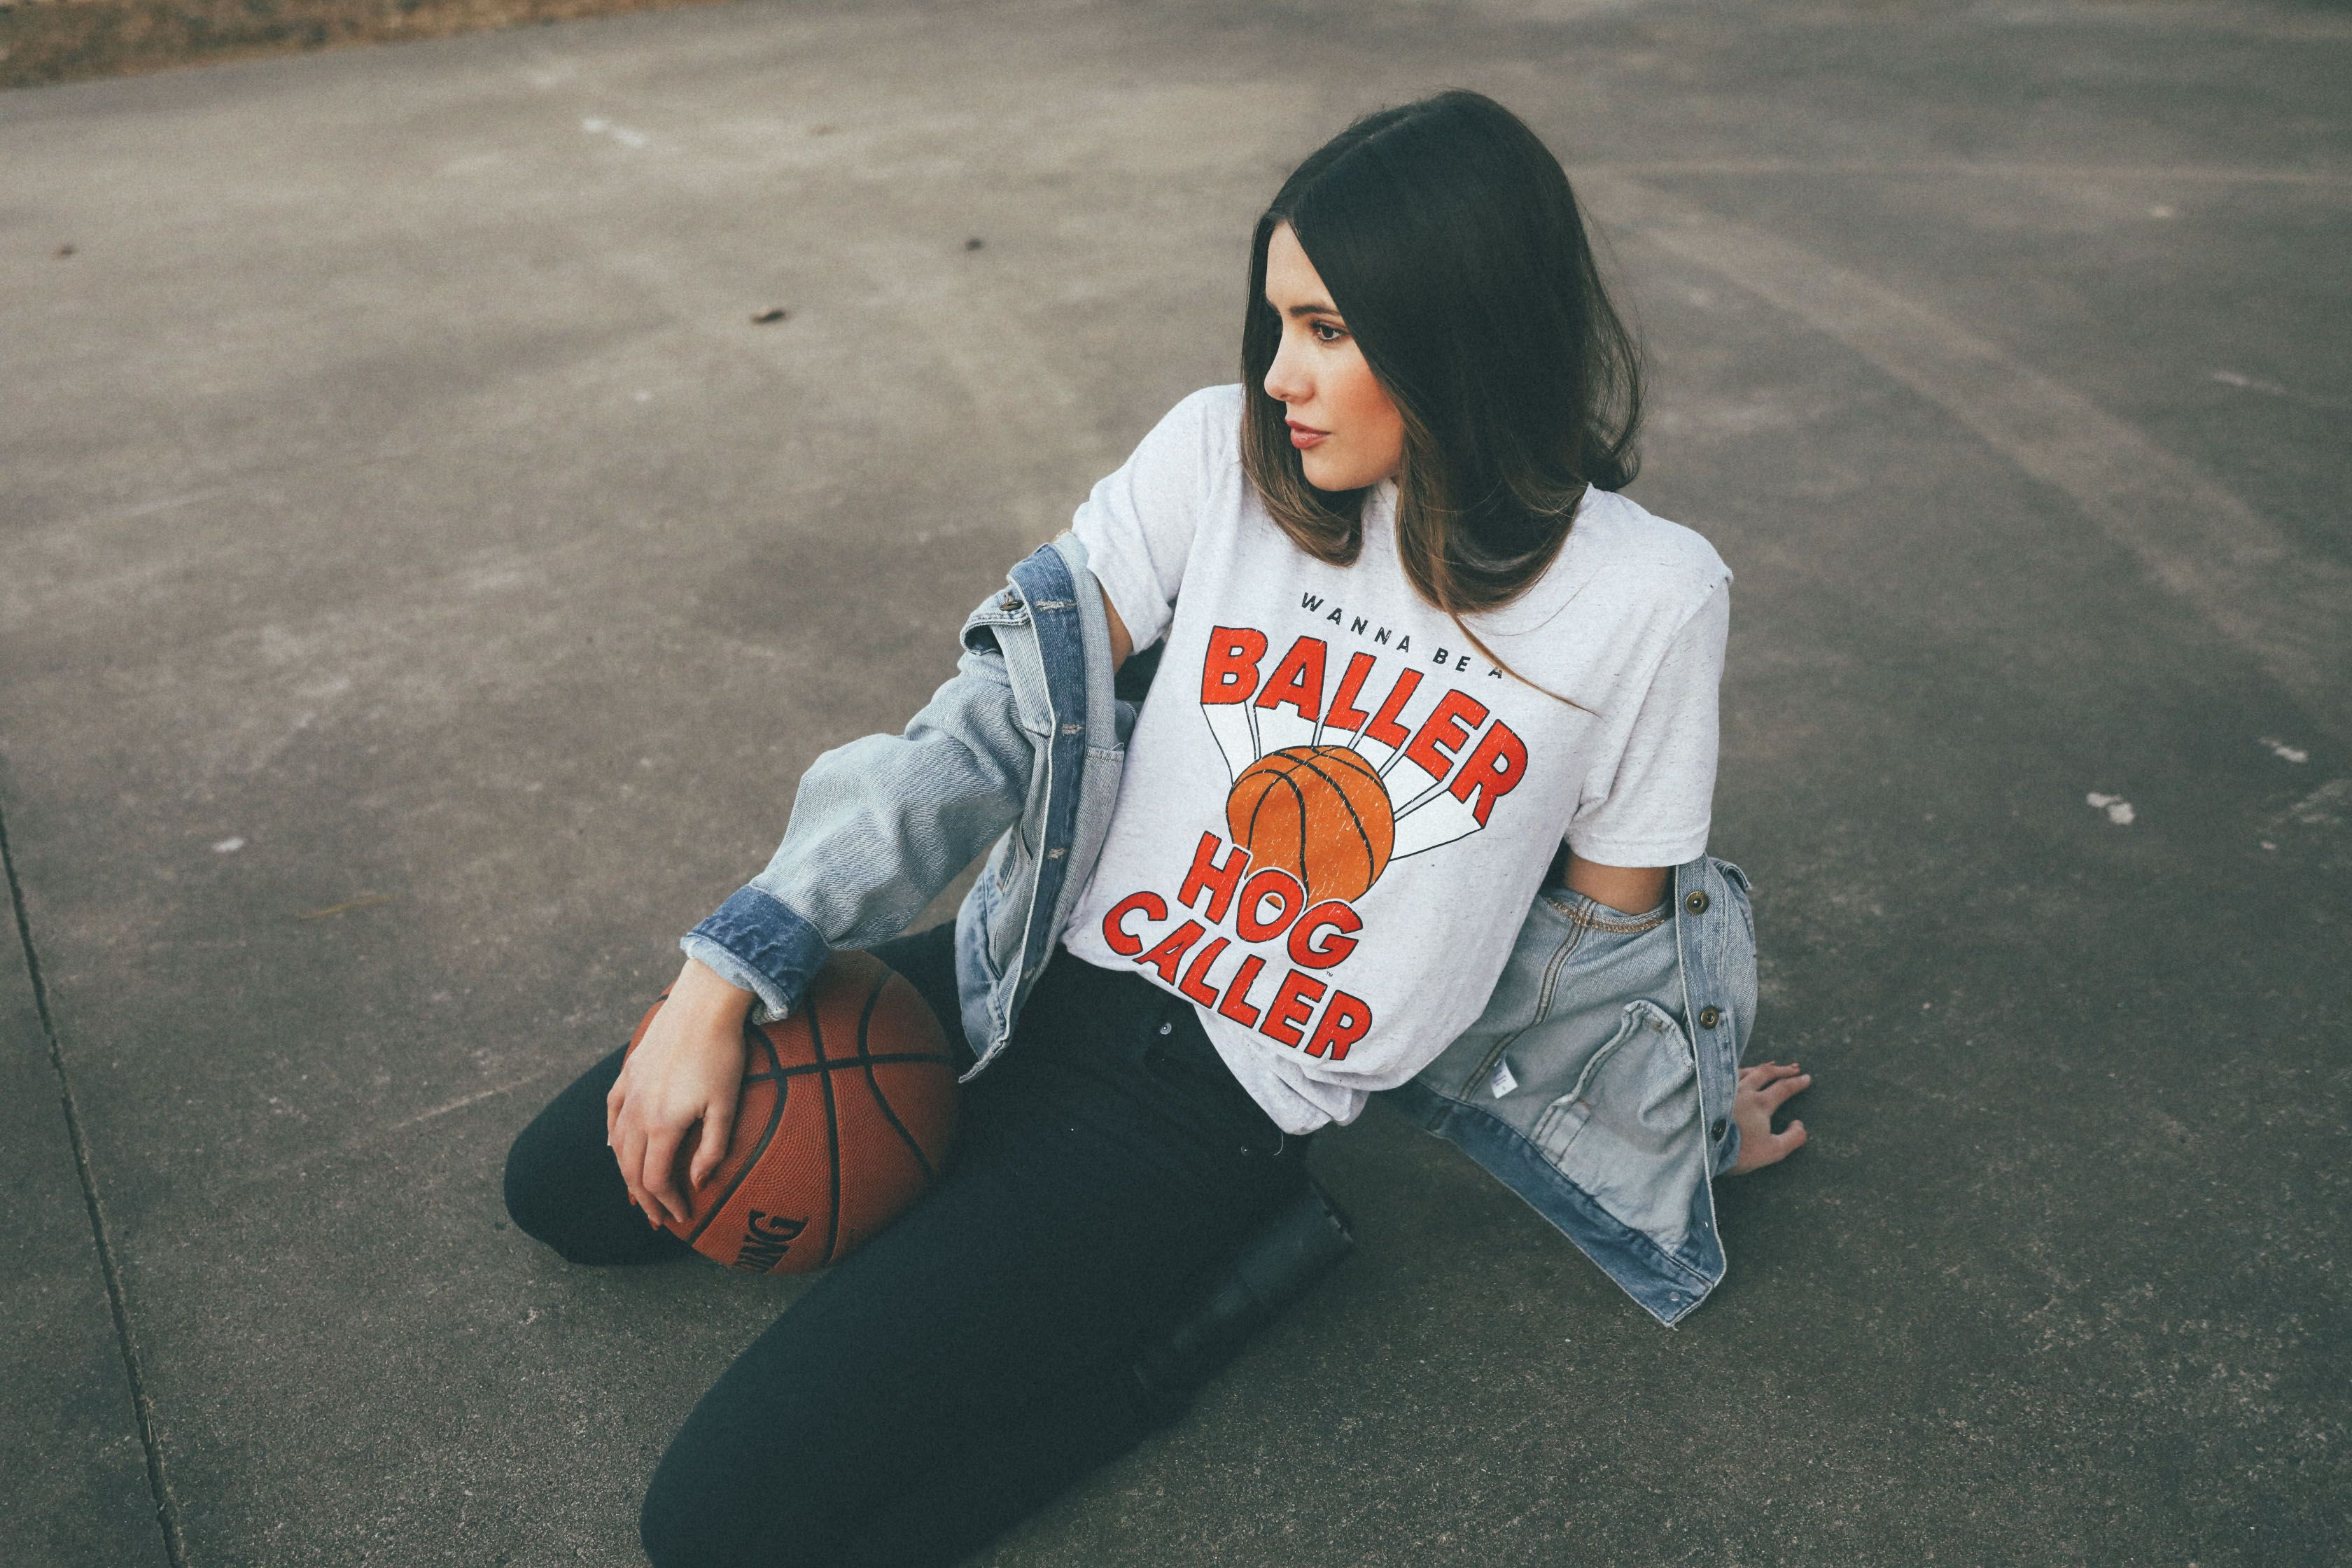 basketball is my favorite sport image by Charlie Southern